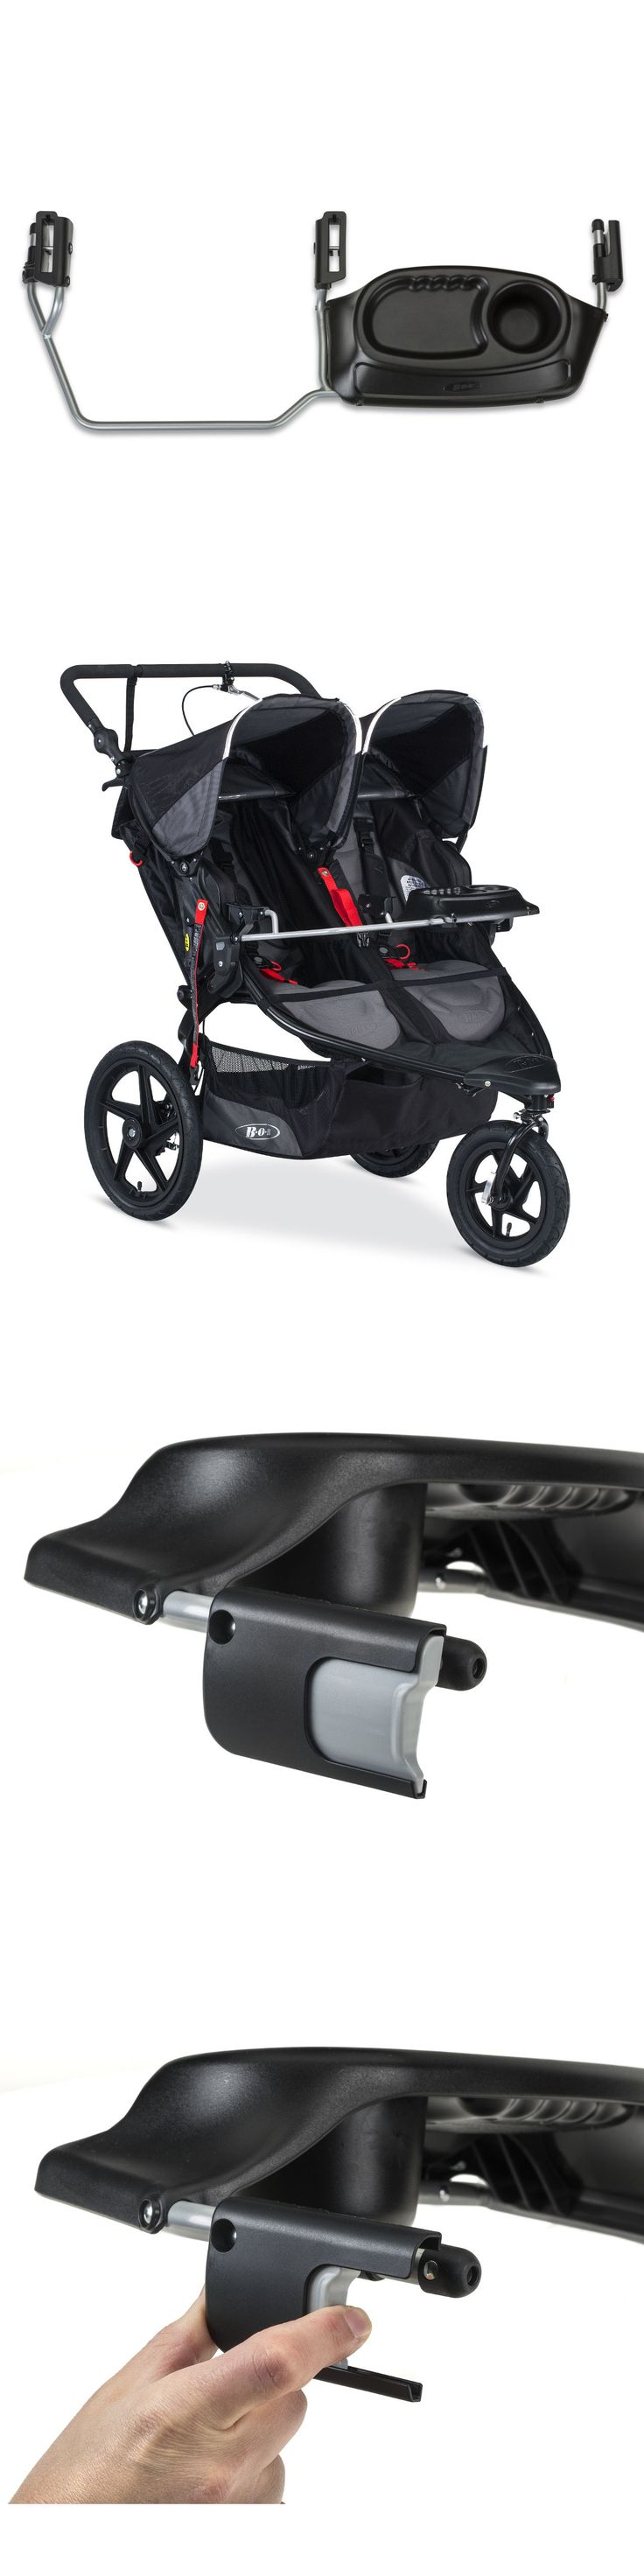 Other Stroller Accessories Bob 2011 2016 Duallie Infant Car Seat Adapter Britax